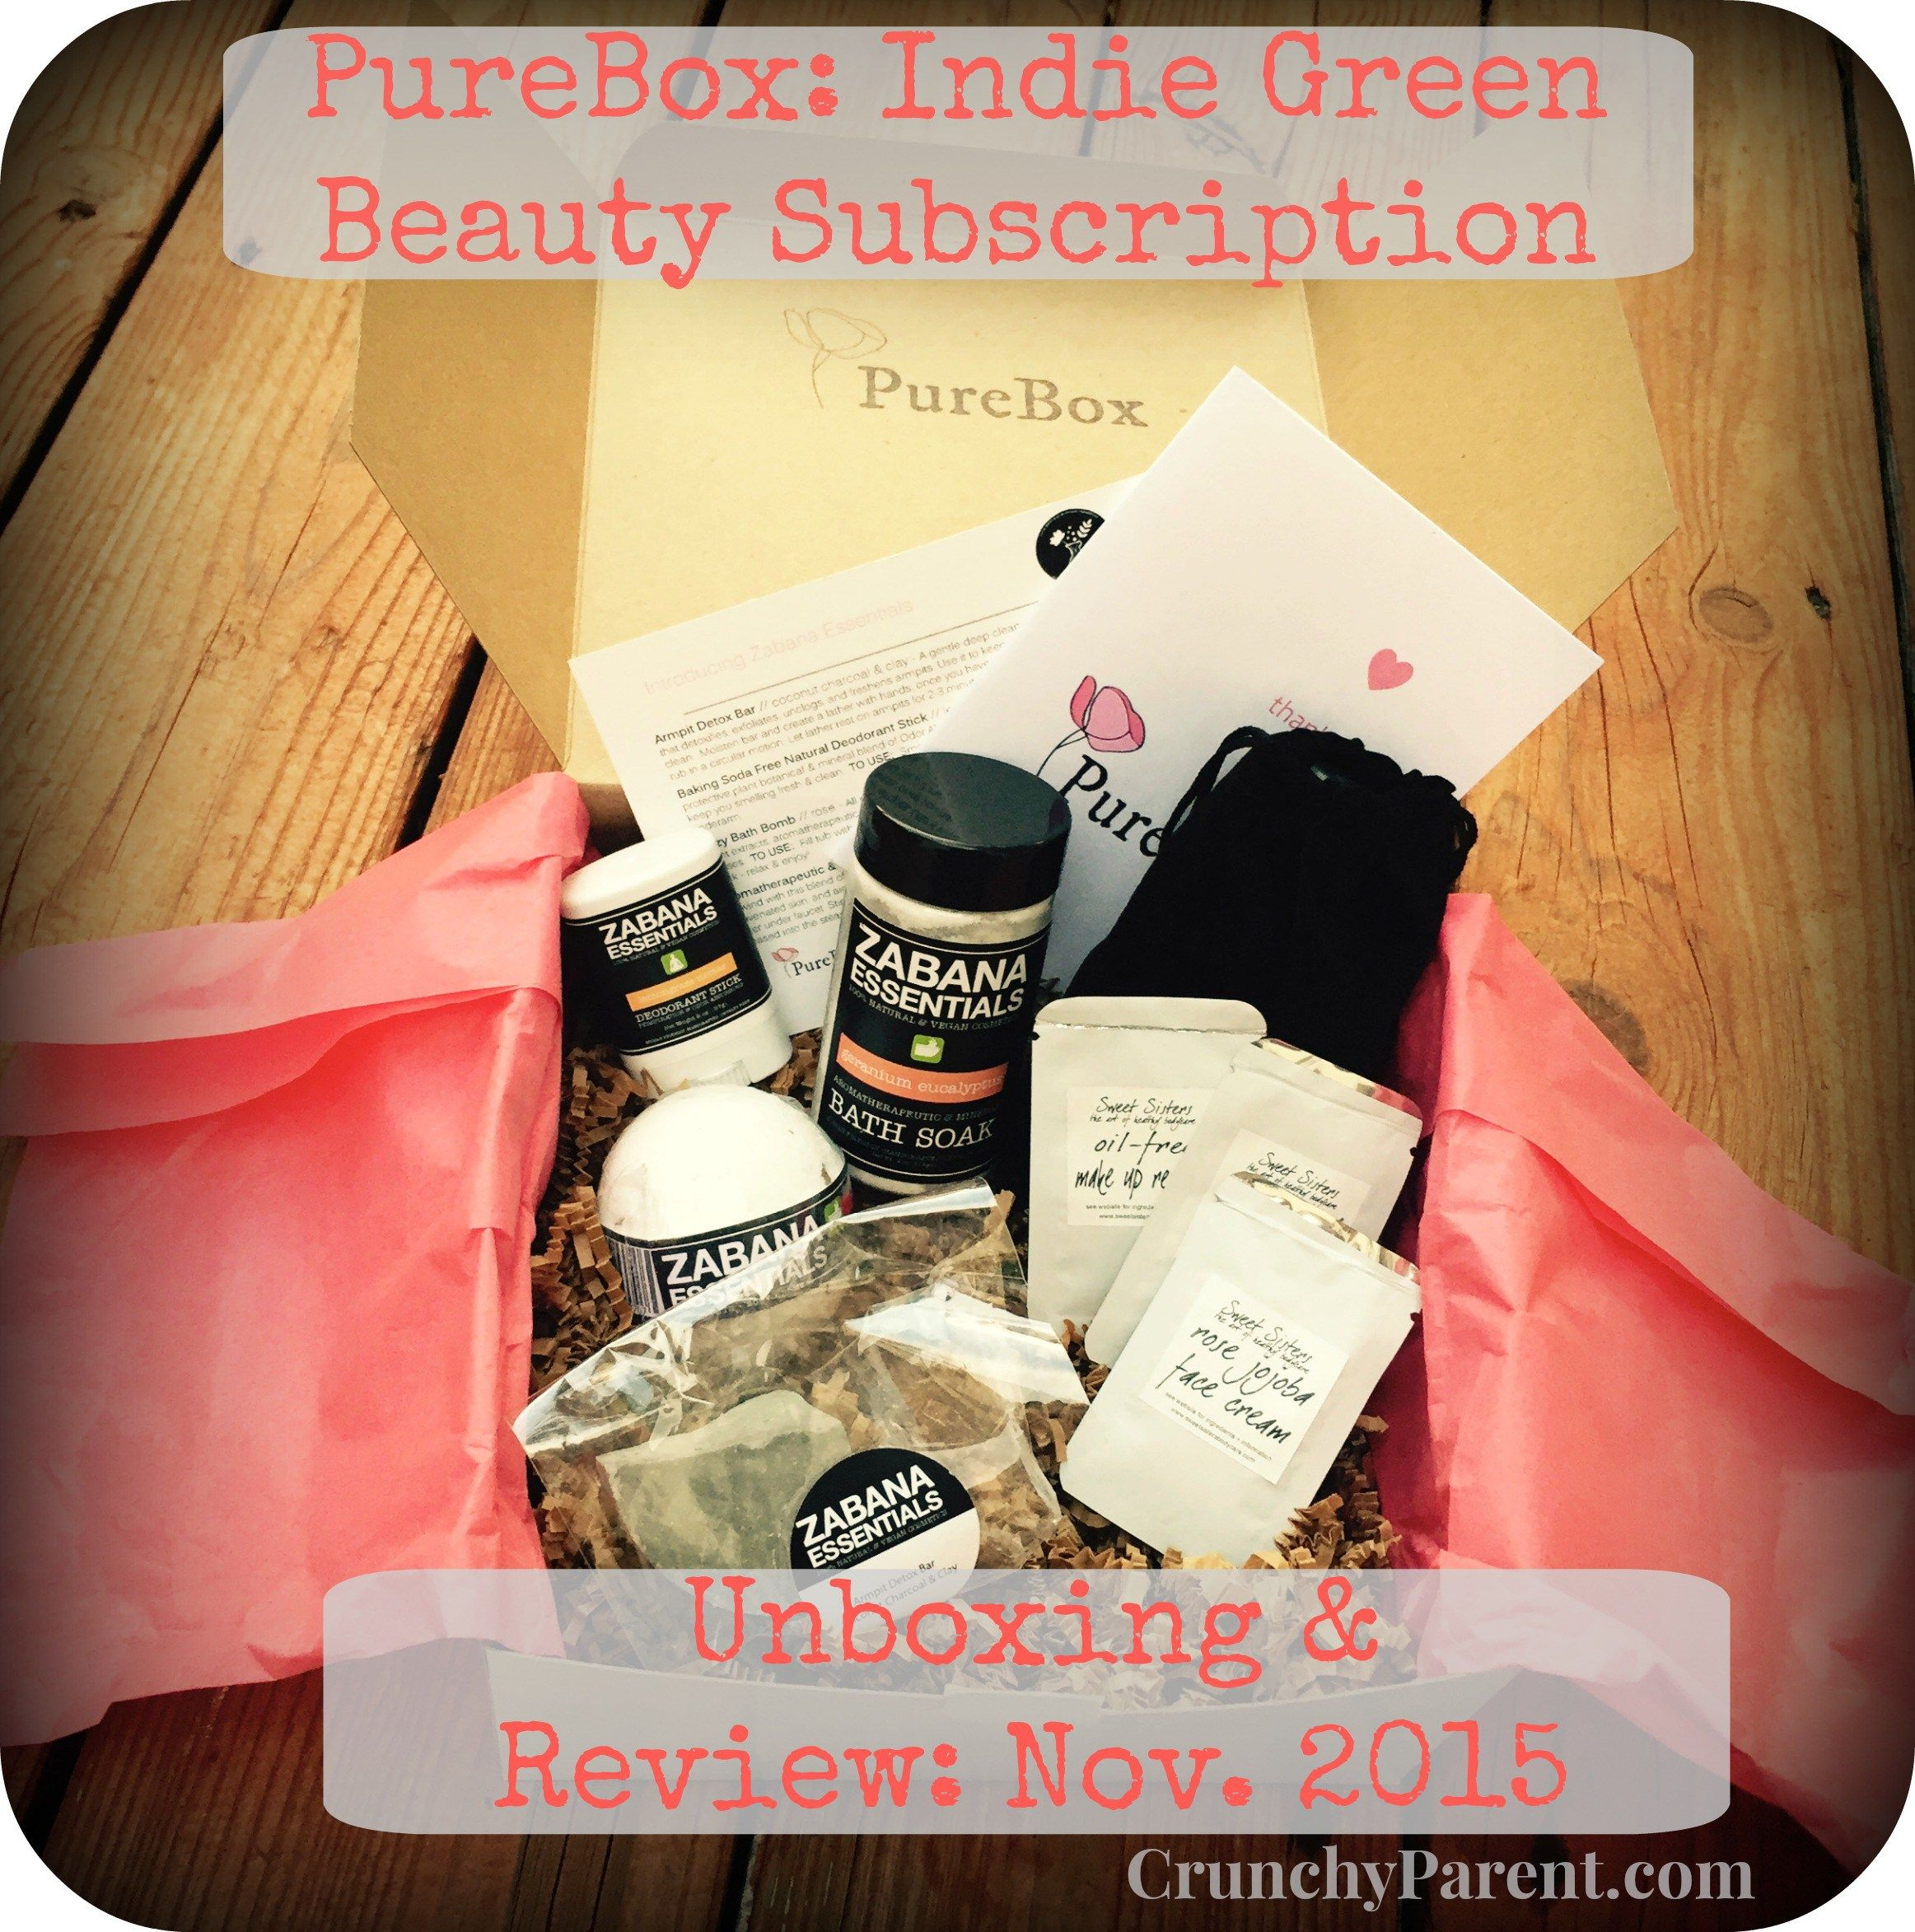 CrunchyParent PureBox Indie Green Beauty Subscription Unboxing and Review November 2015